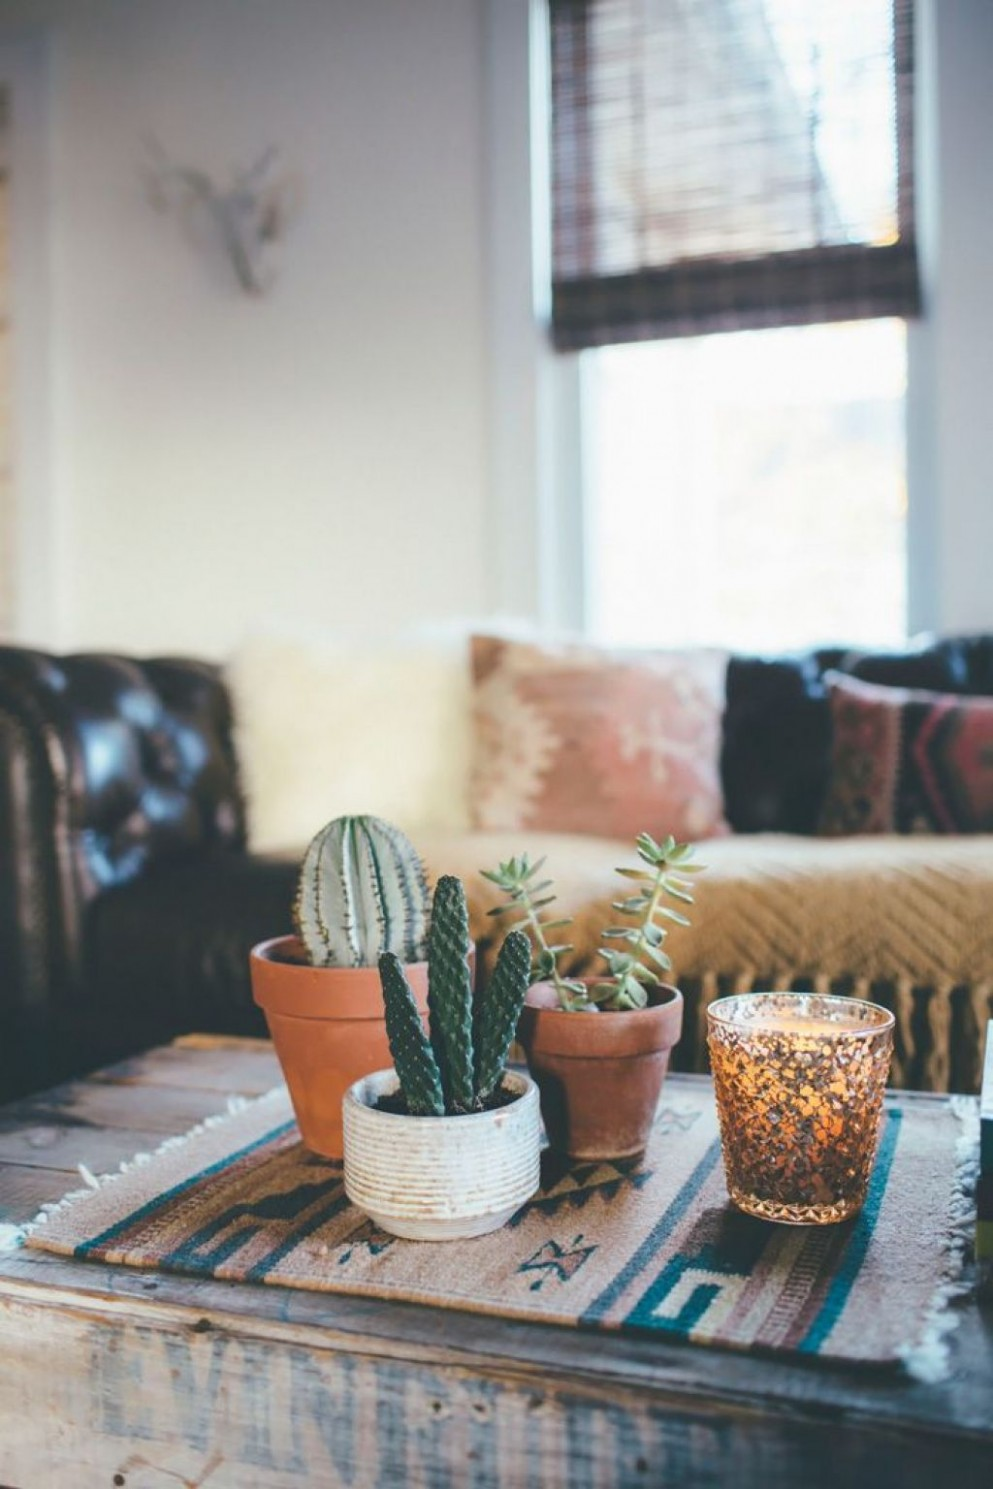 Bohemian Decorating Ideas For An Apartment  Living room decor  - Small Apartment Decorating Ideas Boho